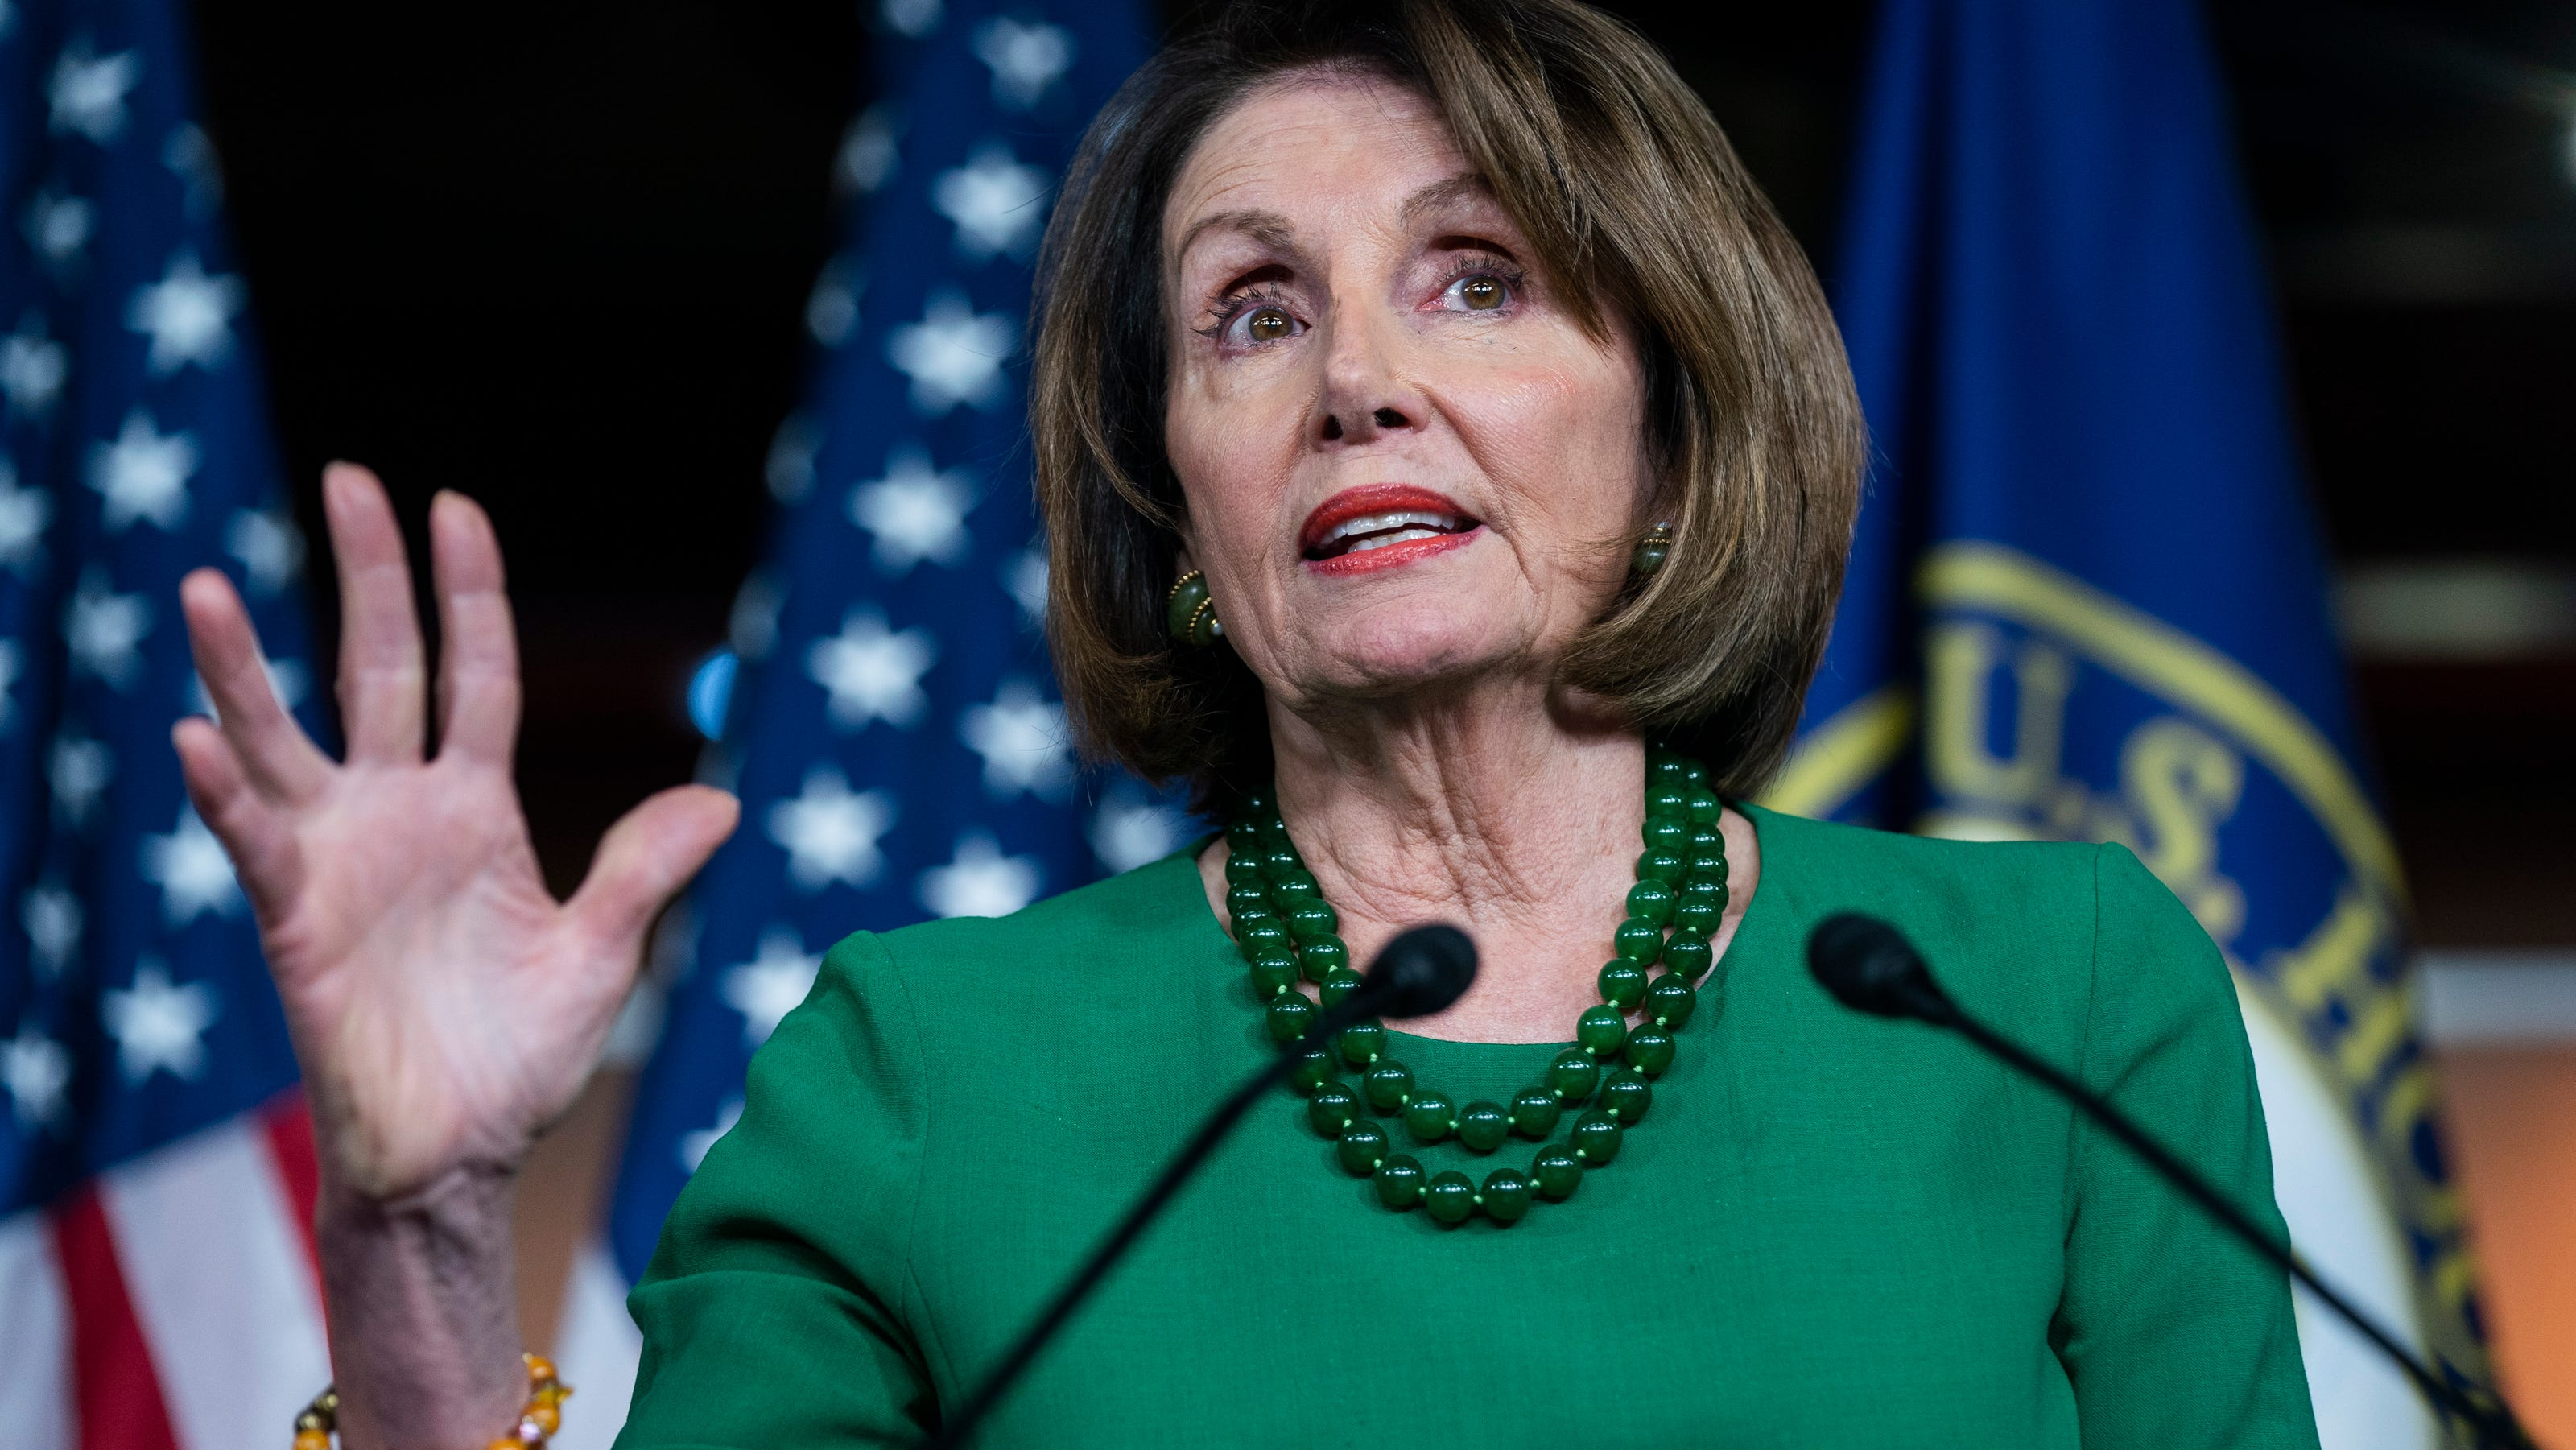 All roads lead to Putin - Pelosi on Trump as House holds